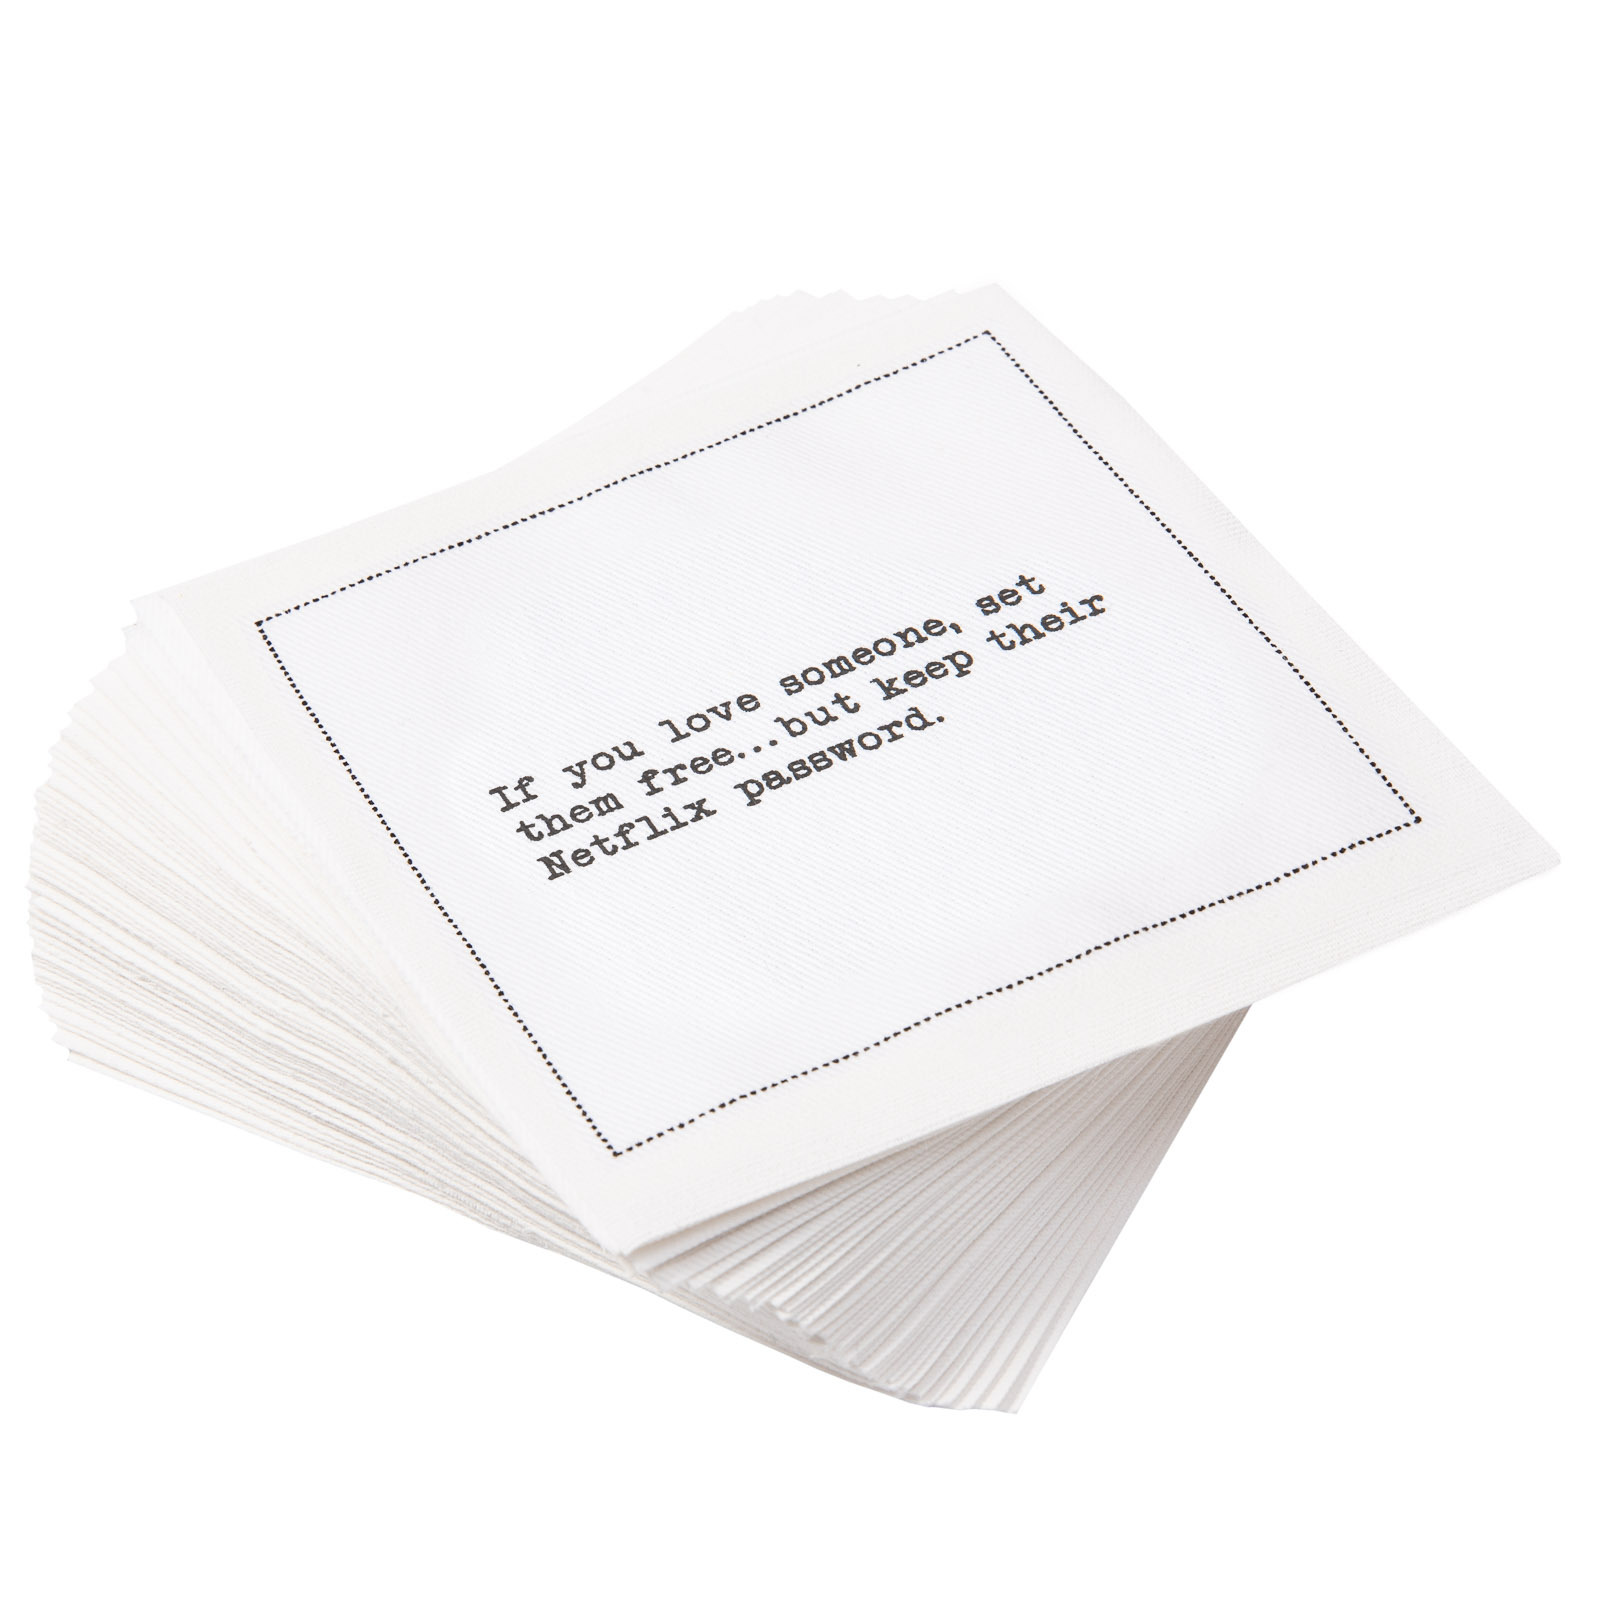 "White Cotton Cocktail with Relationship Quotes - 4.5"" x 4.5"" - 50 units"